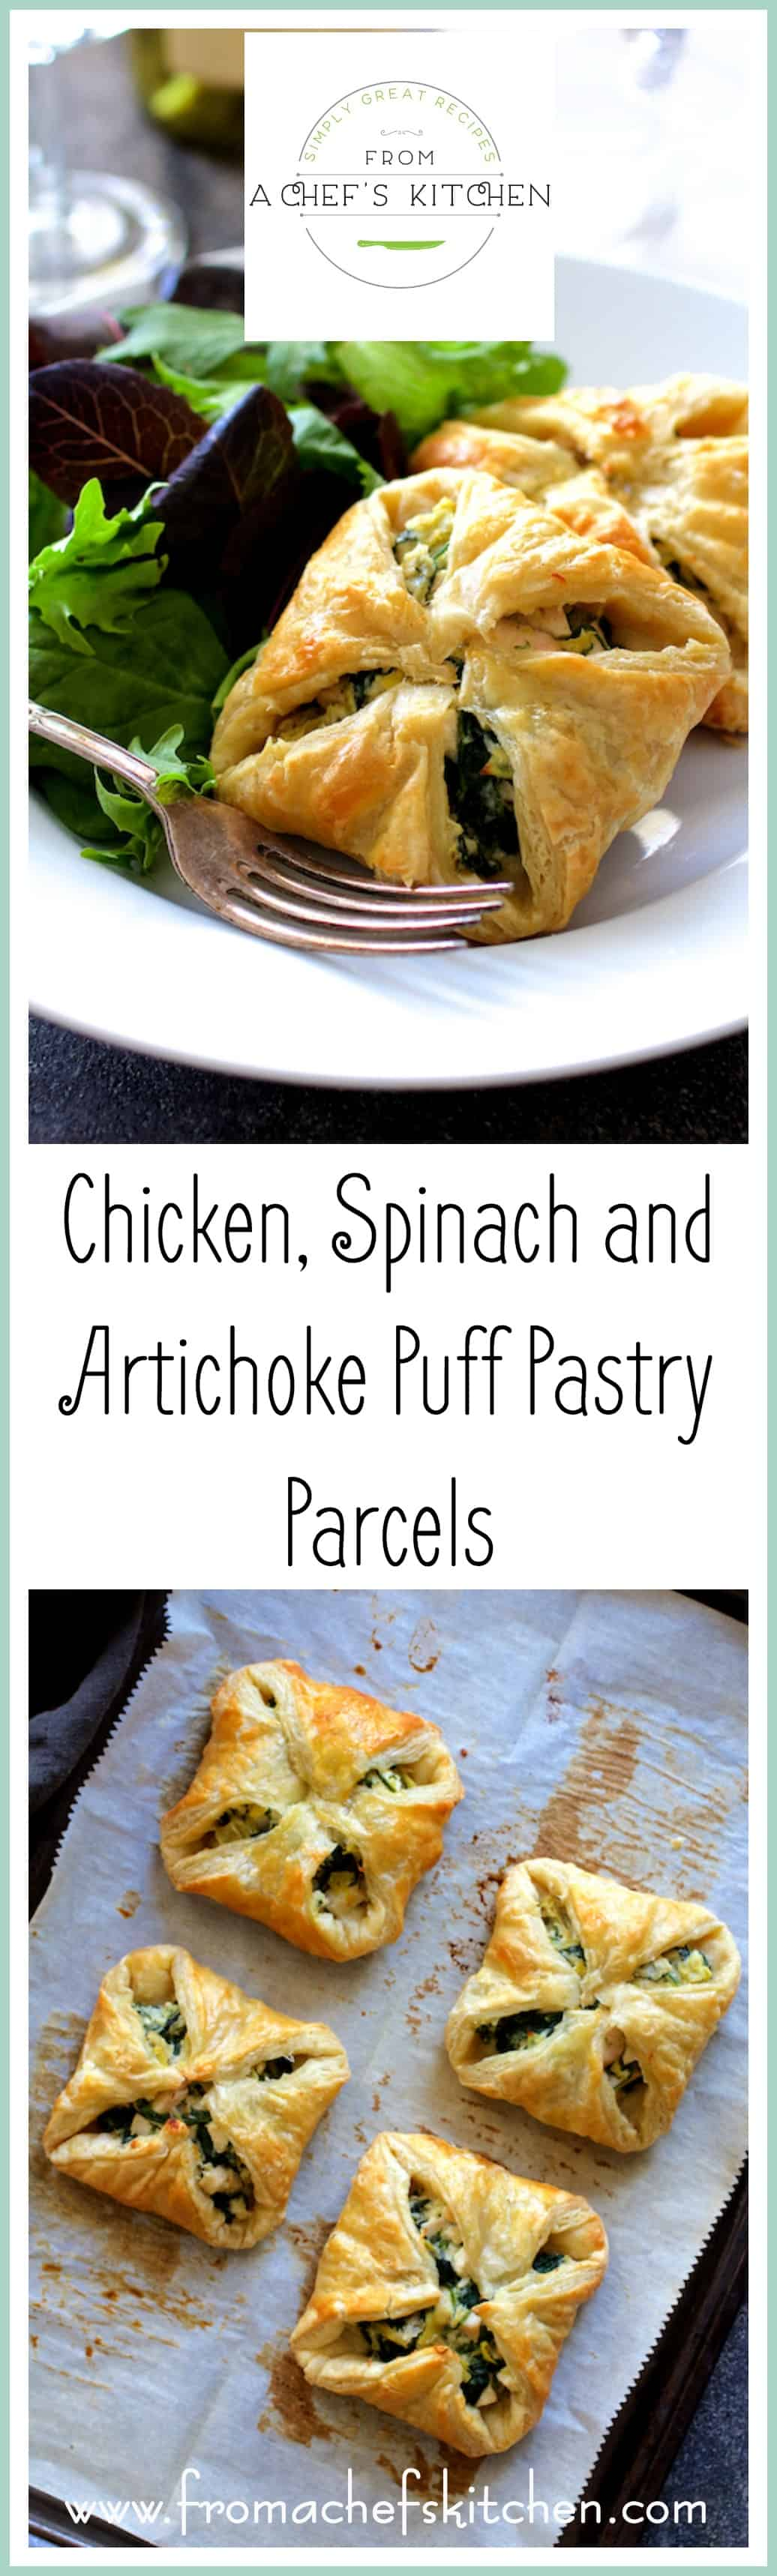 Chicken, Spinach and Artichoke Puff Pastry Parcels are super elegant and perfect for your spring special occasion!  @PuffPastry  #InspiredbyPuff